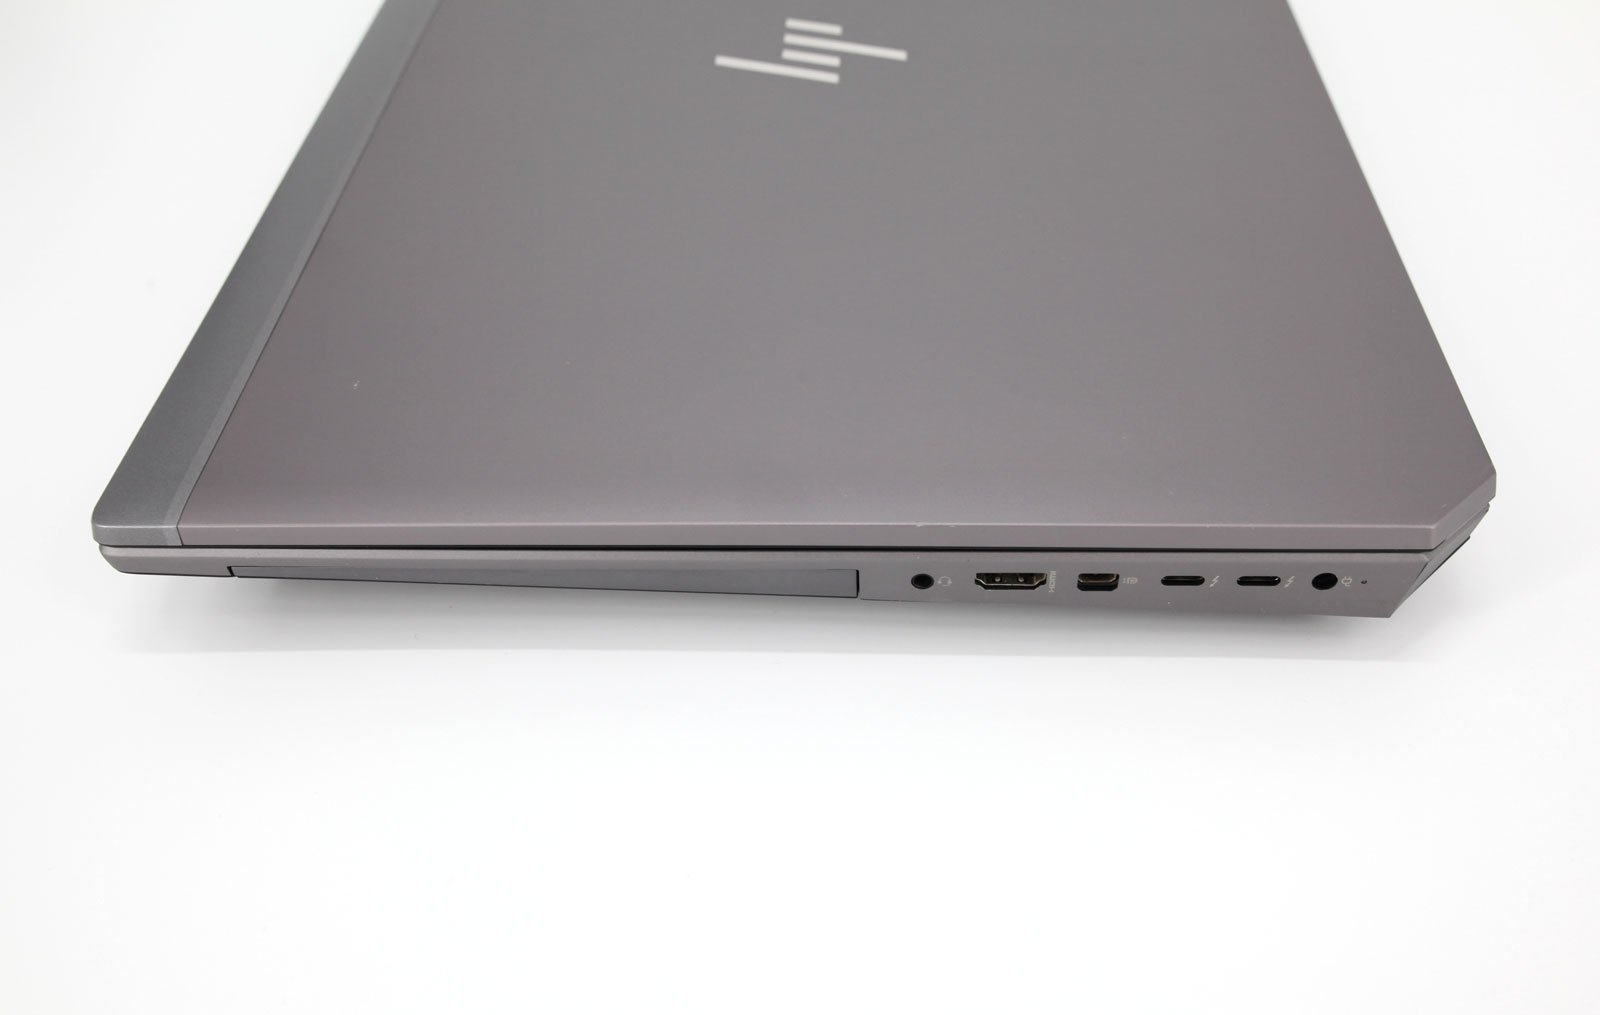 HP ZBook 17 G5 CAD Laptop: Core i7, 32GB RAM, 1TB SSD+ HDD, P4200, Warranty - CruiseTech